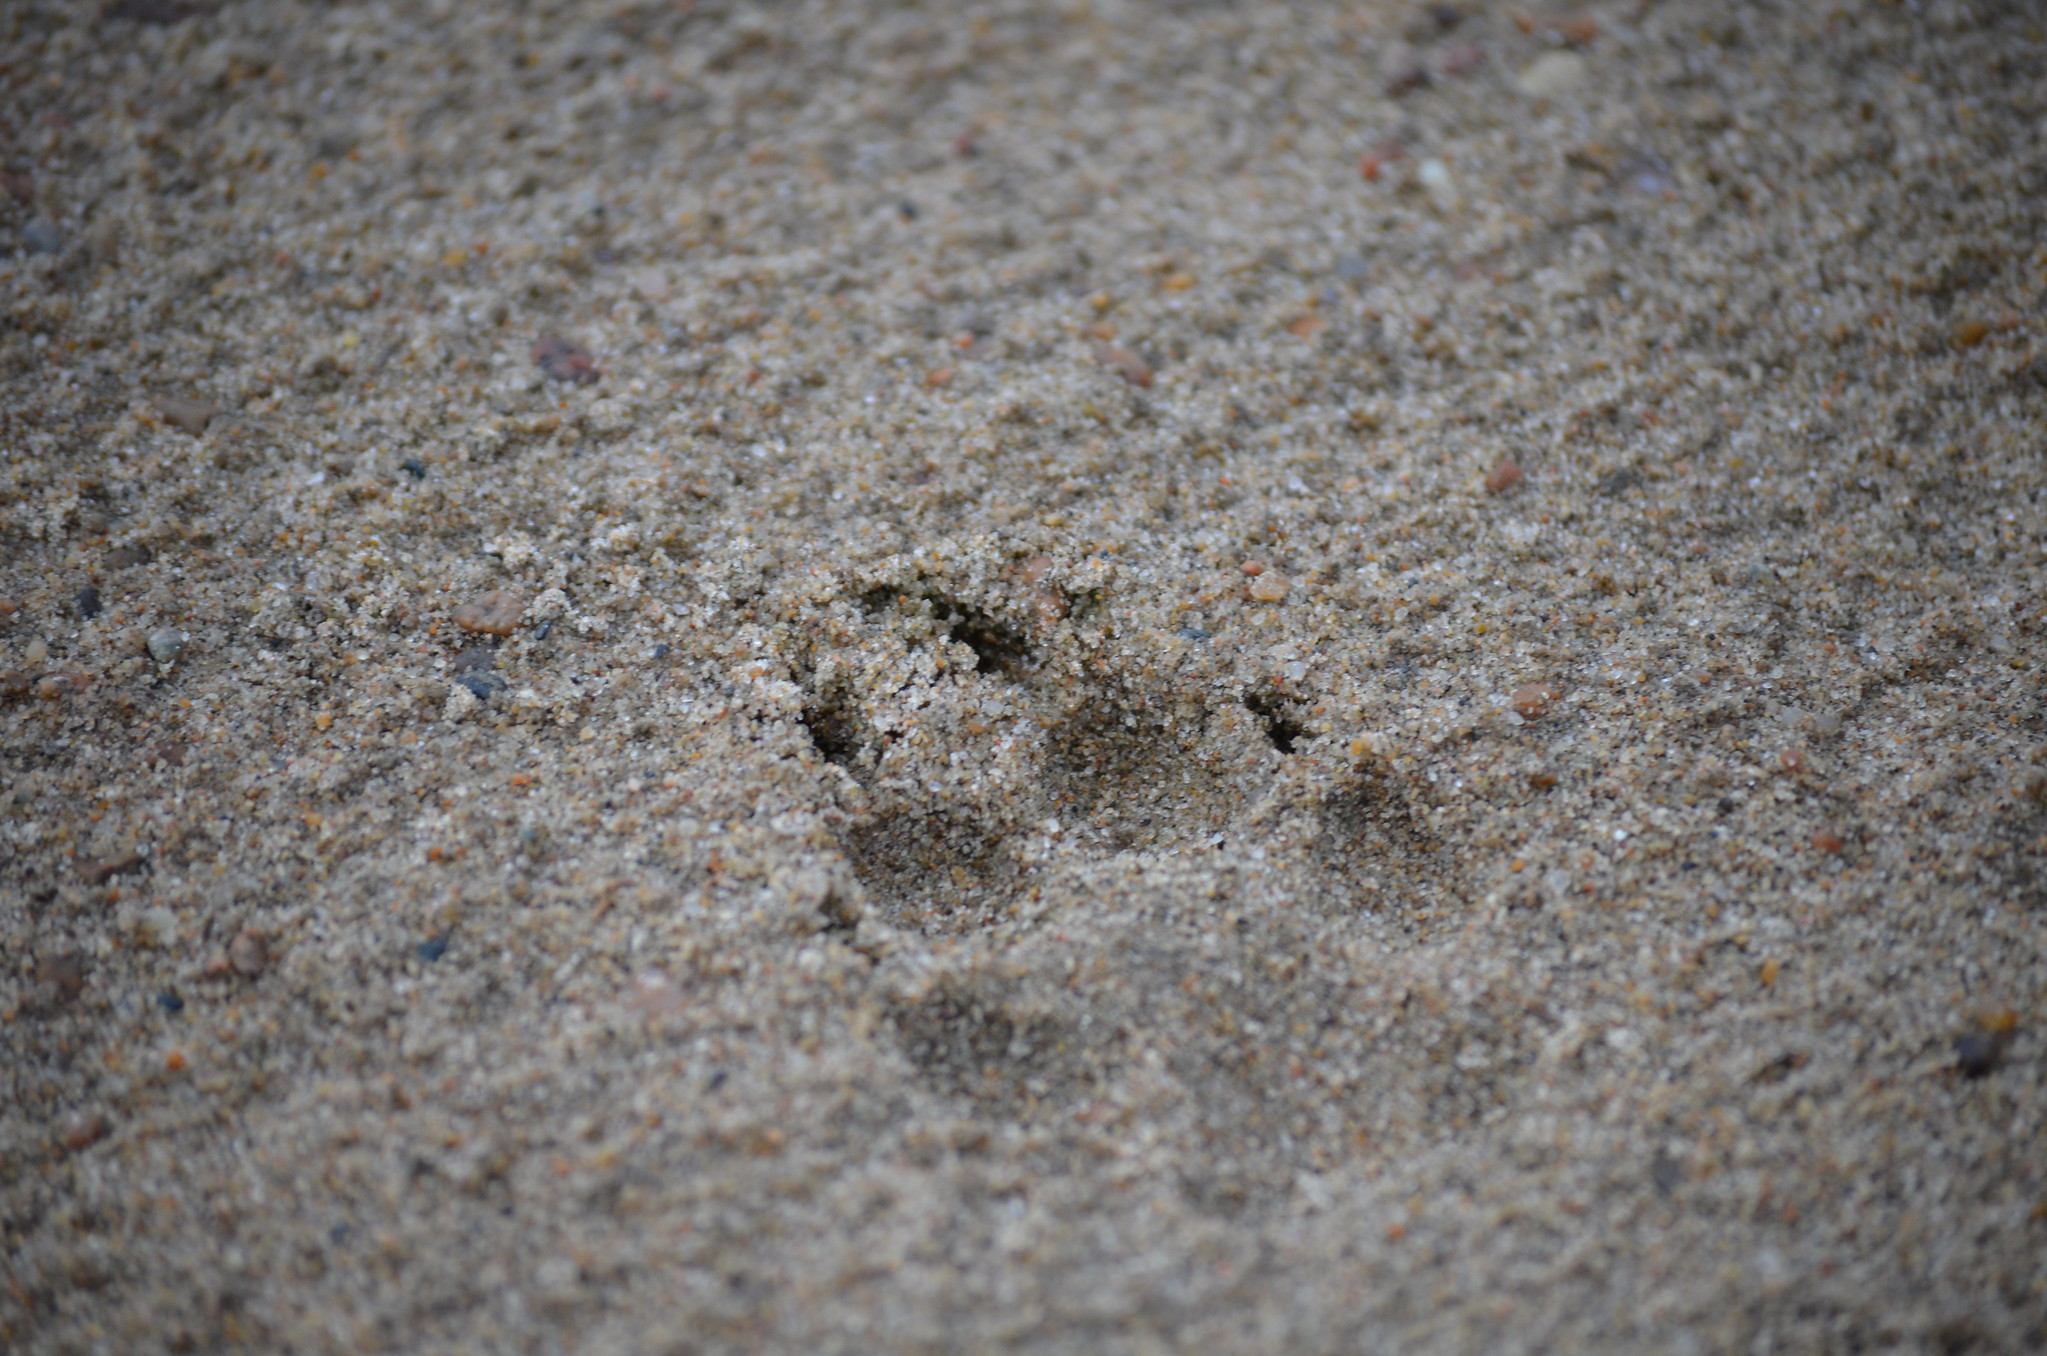 A coyote track is imprinted on a sandbar